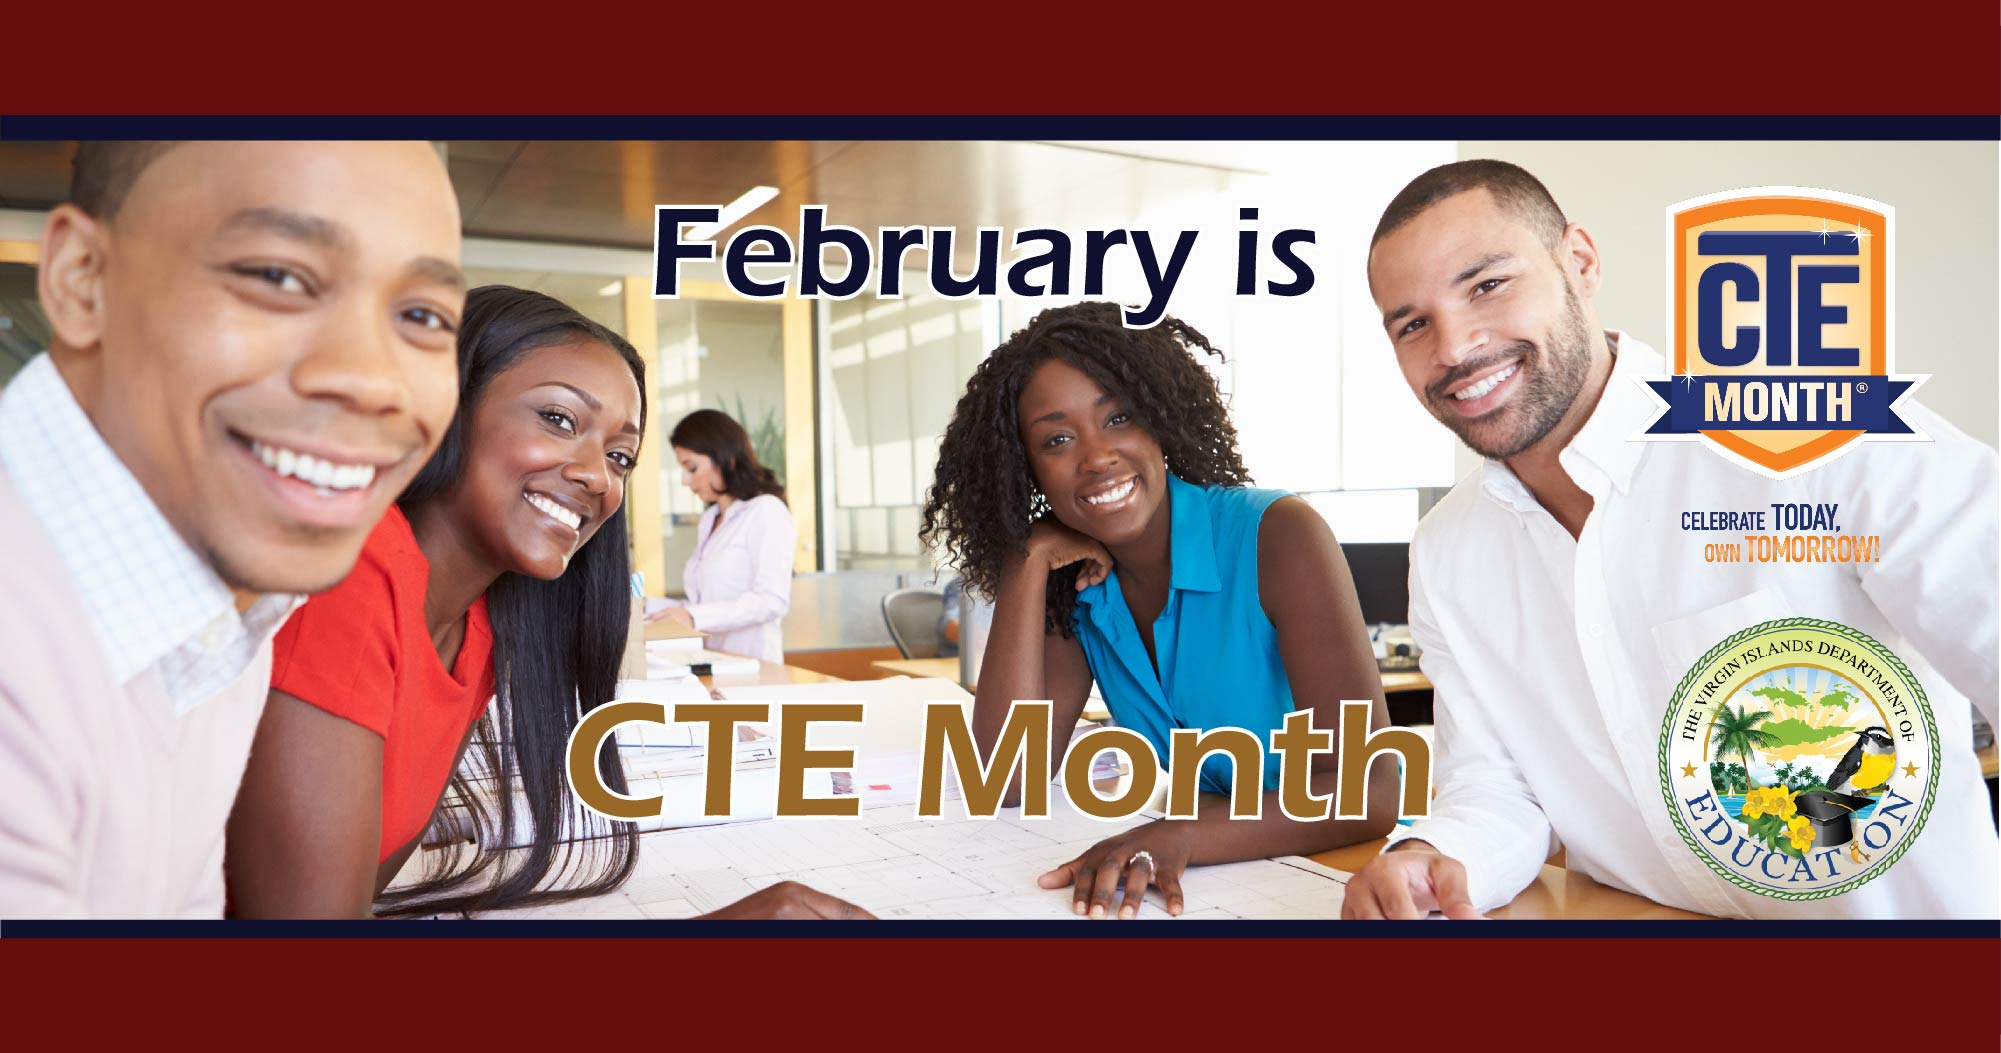 See What's Happening During CTE Month!